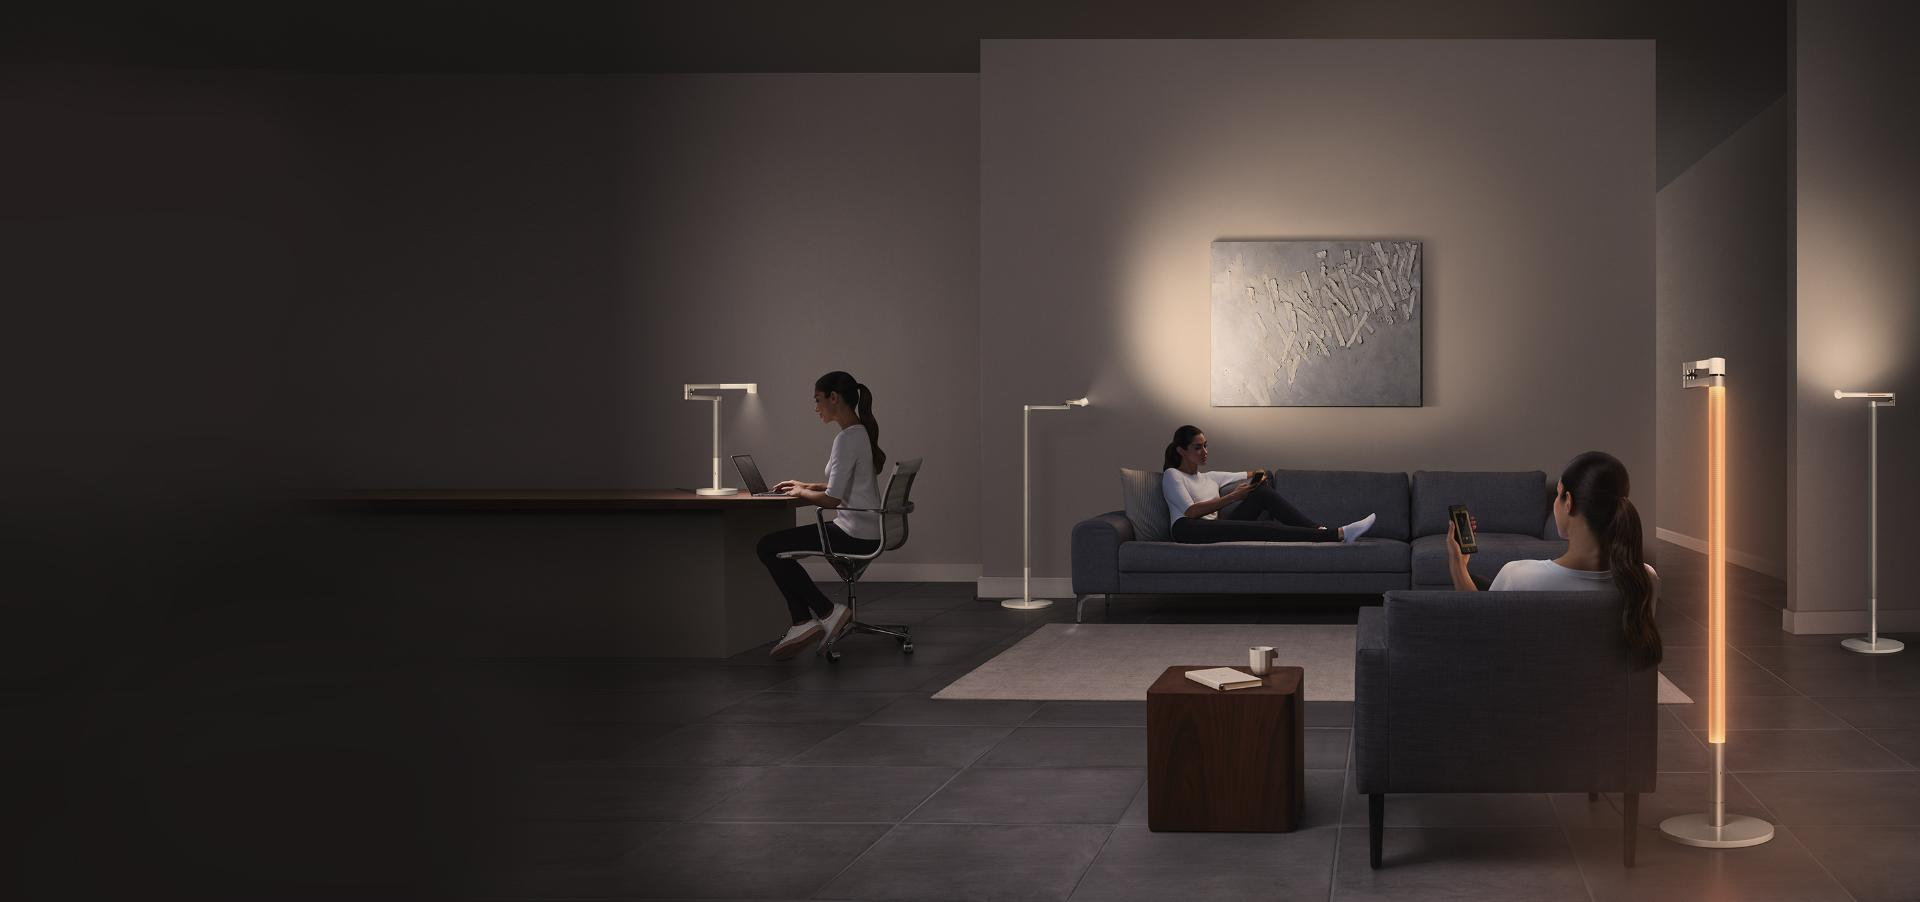 Home beautifully lit by Dyson Lightcycle Morph light